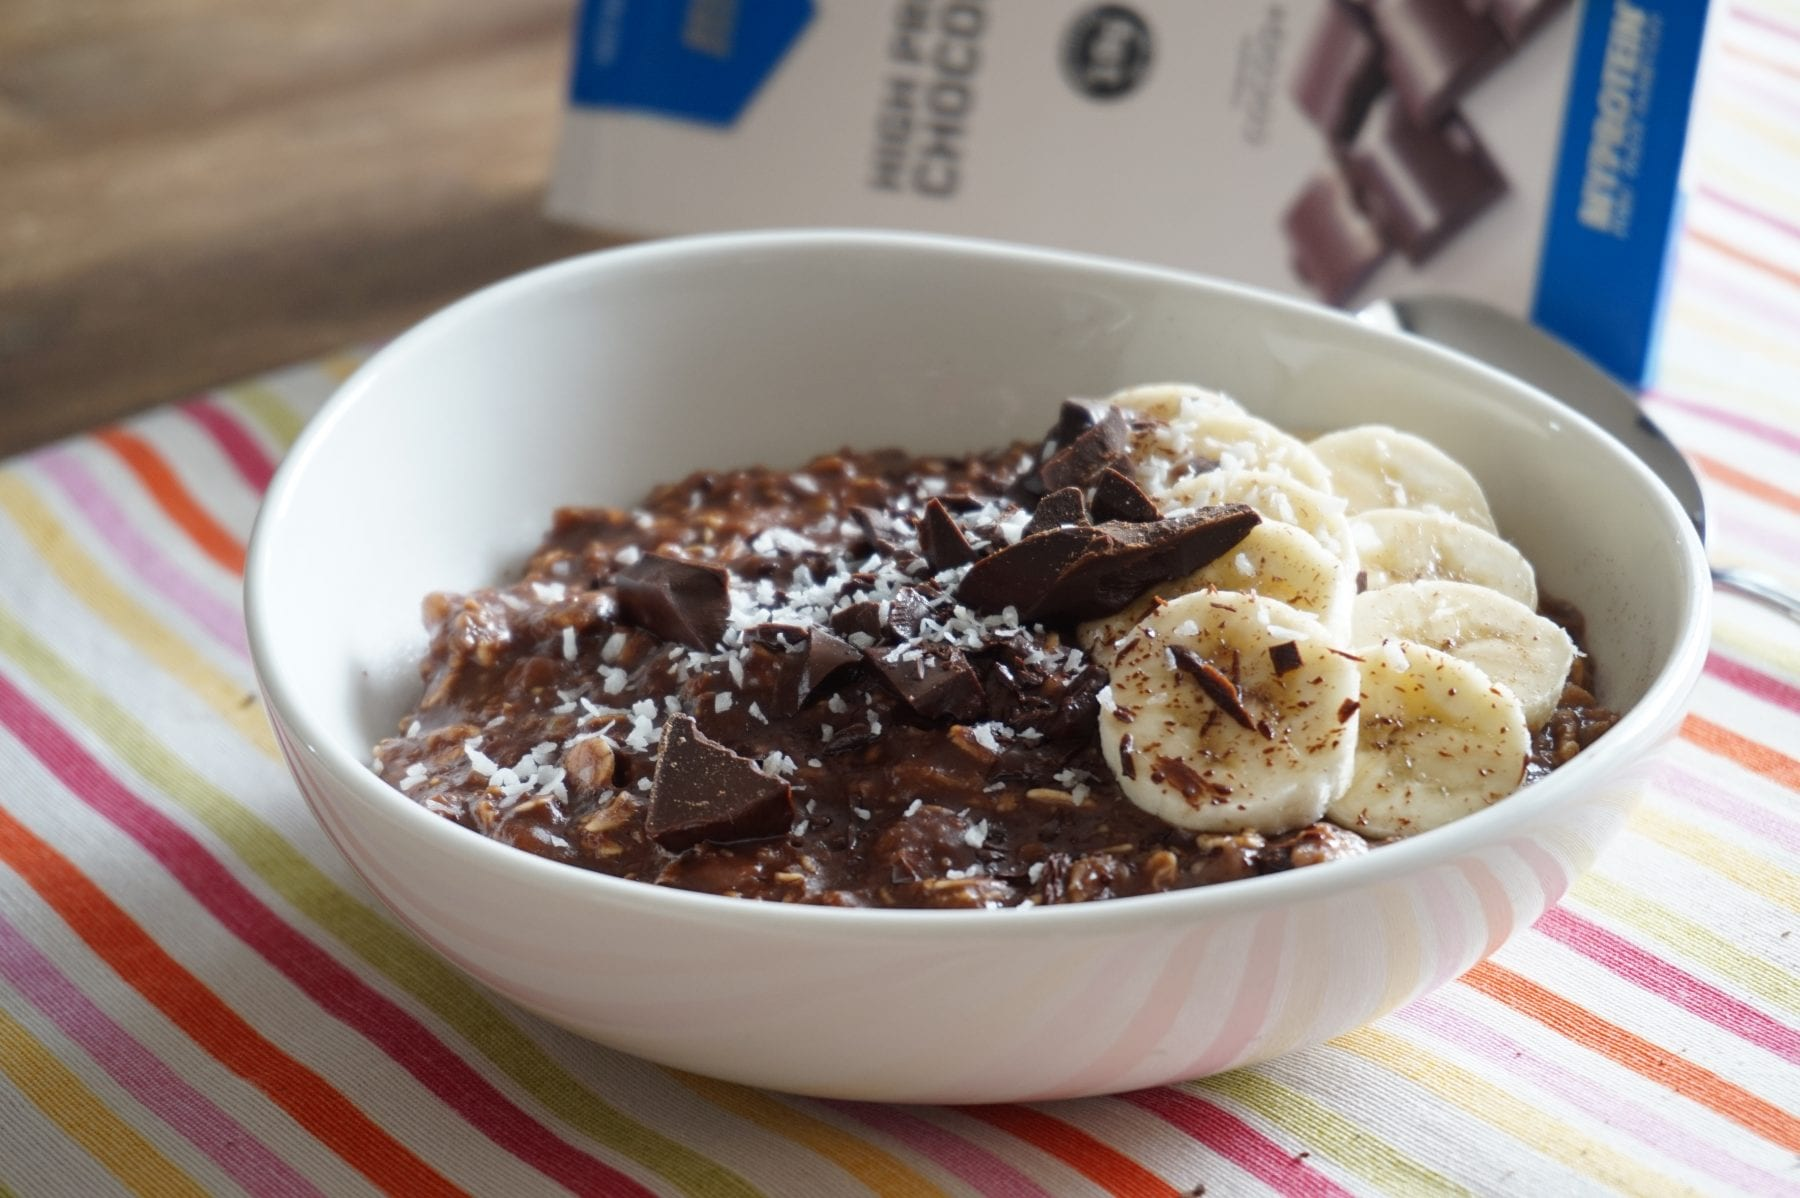 Chocolade Havermout Recept